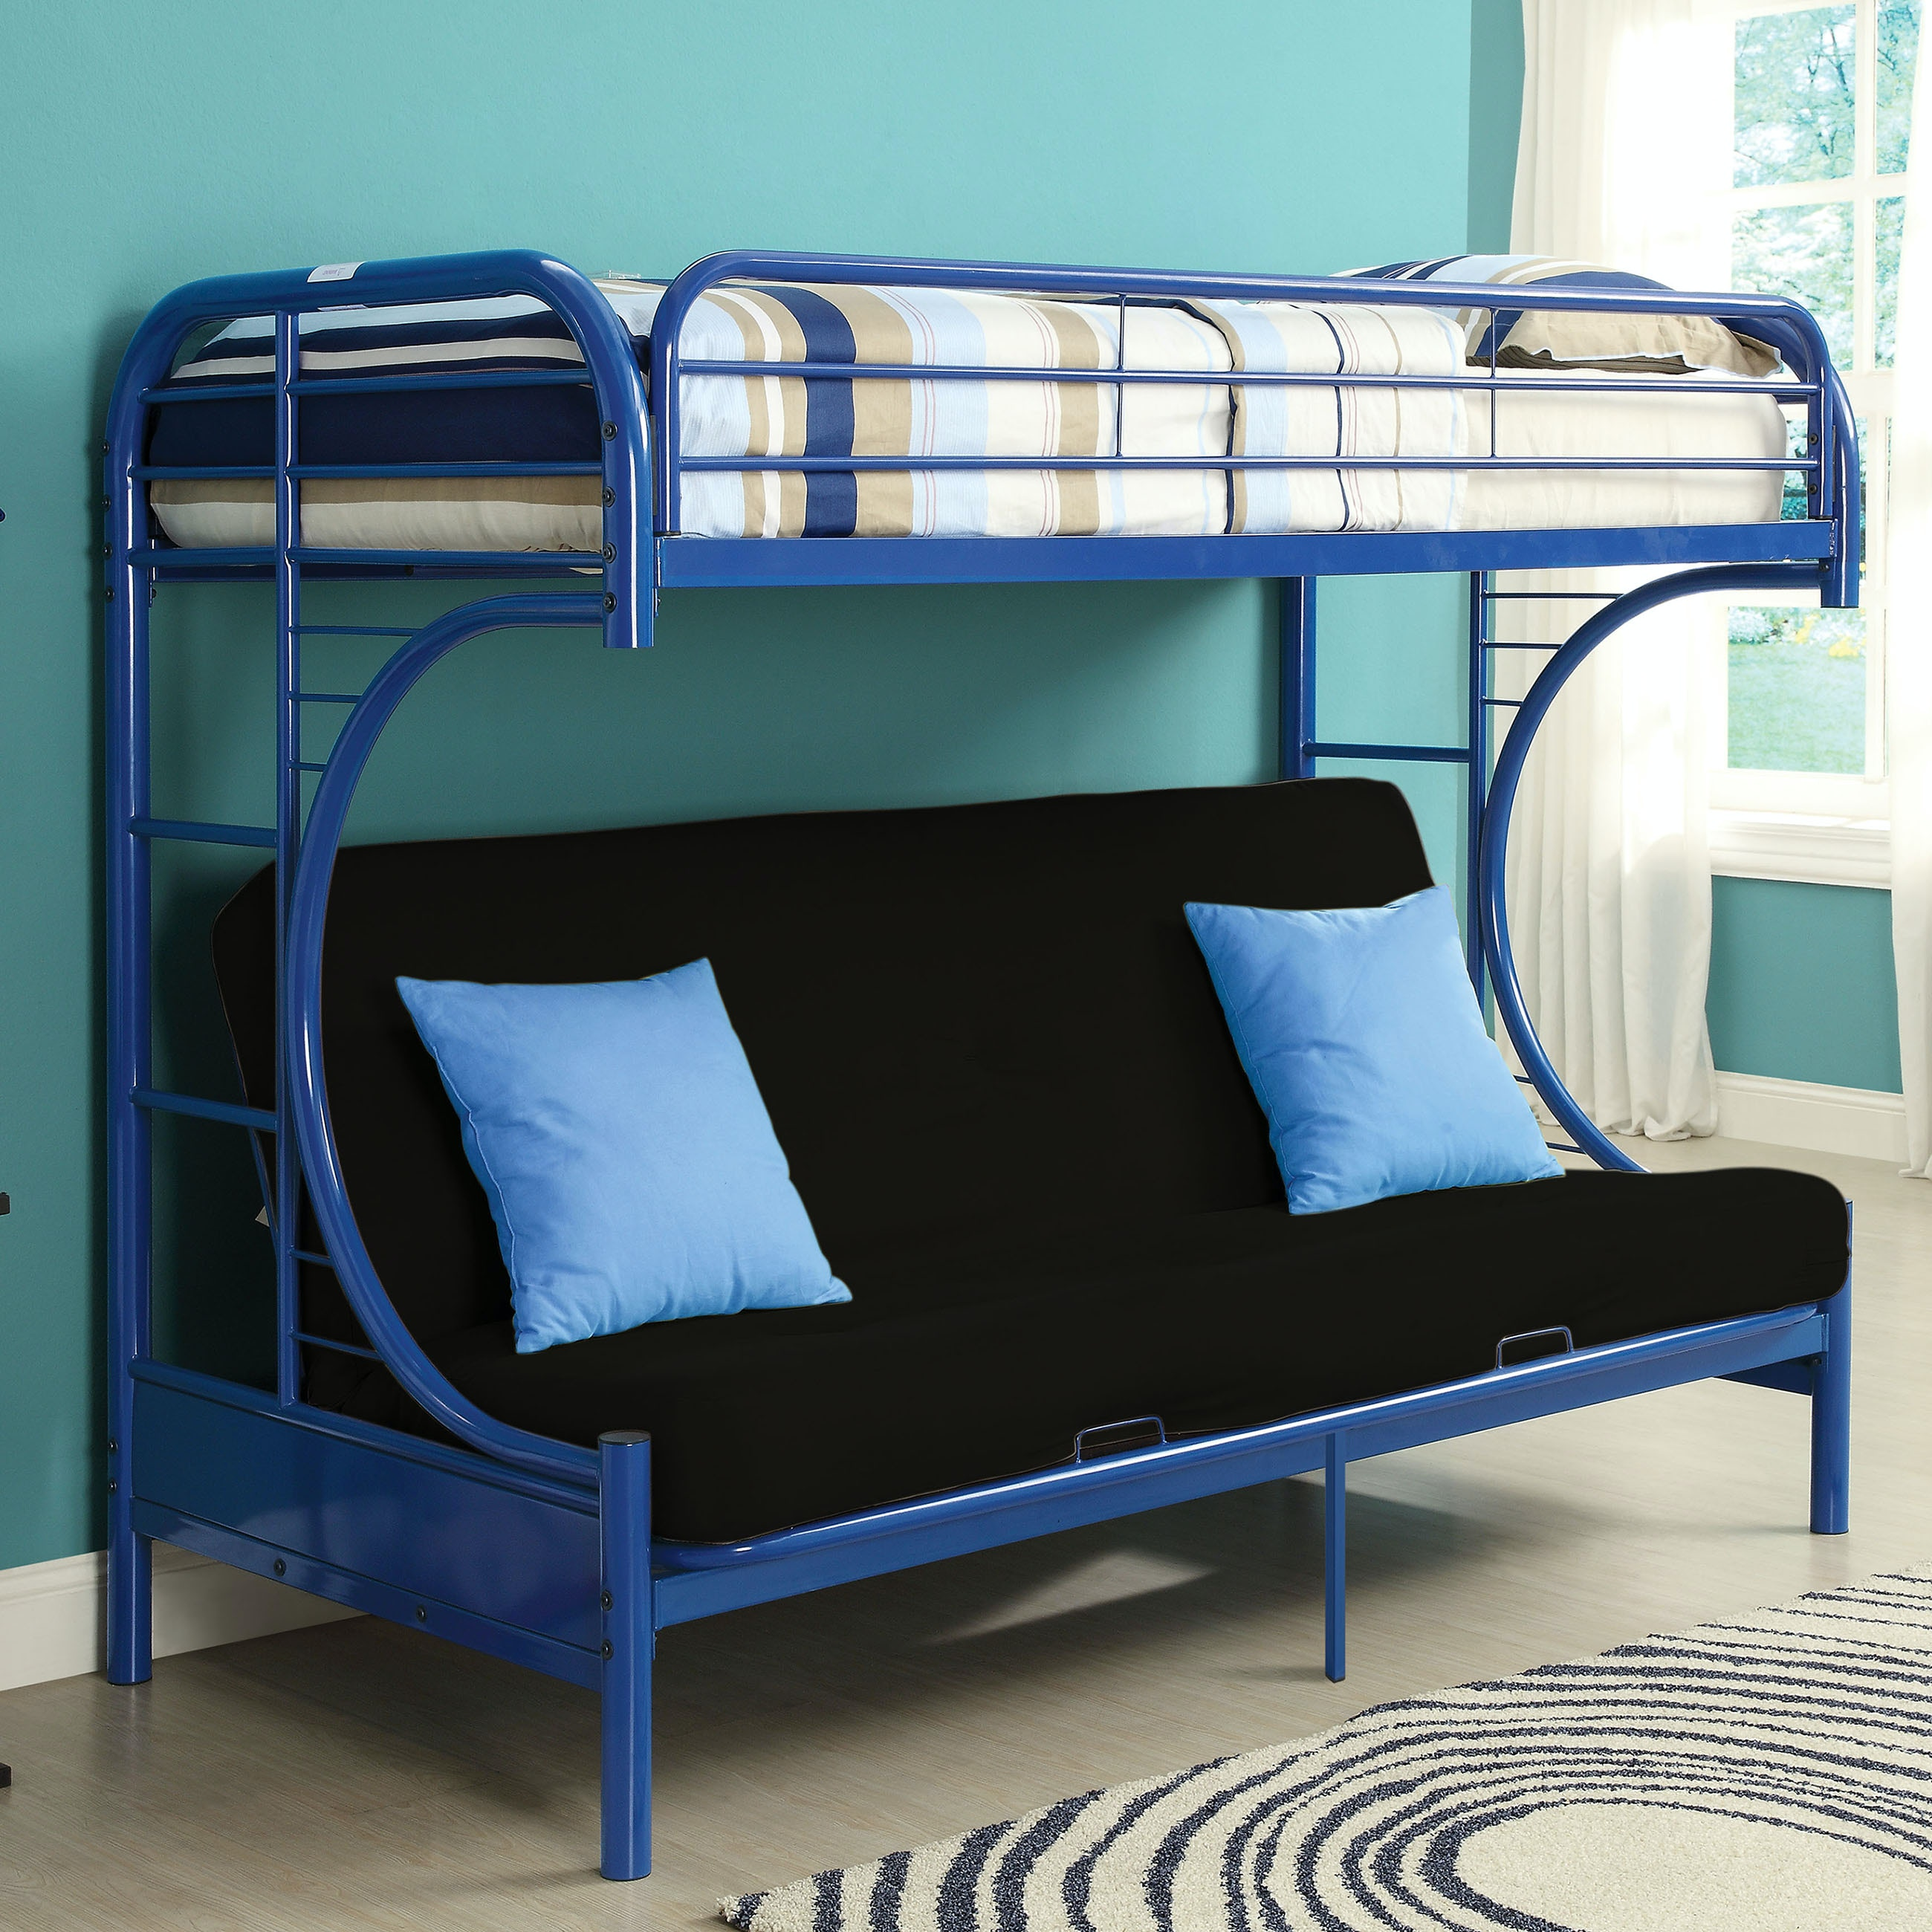 Acme Furniture Youth Eclipse Twin Xl Over Queen Futon Bunk Bed